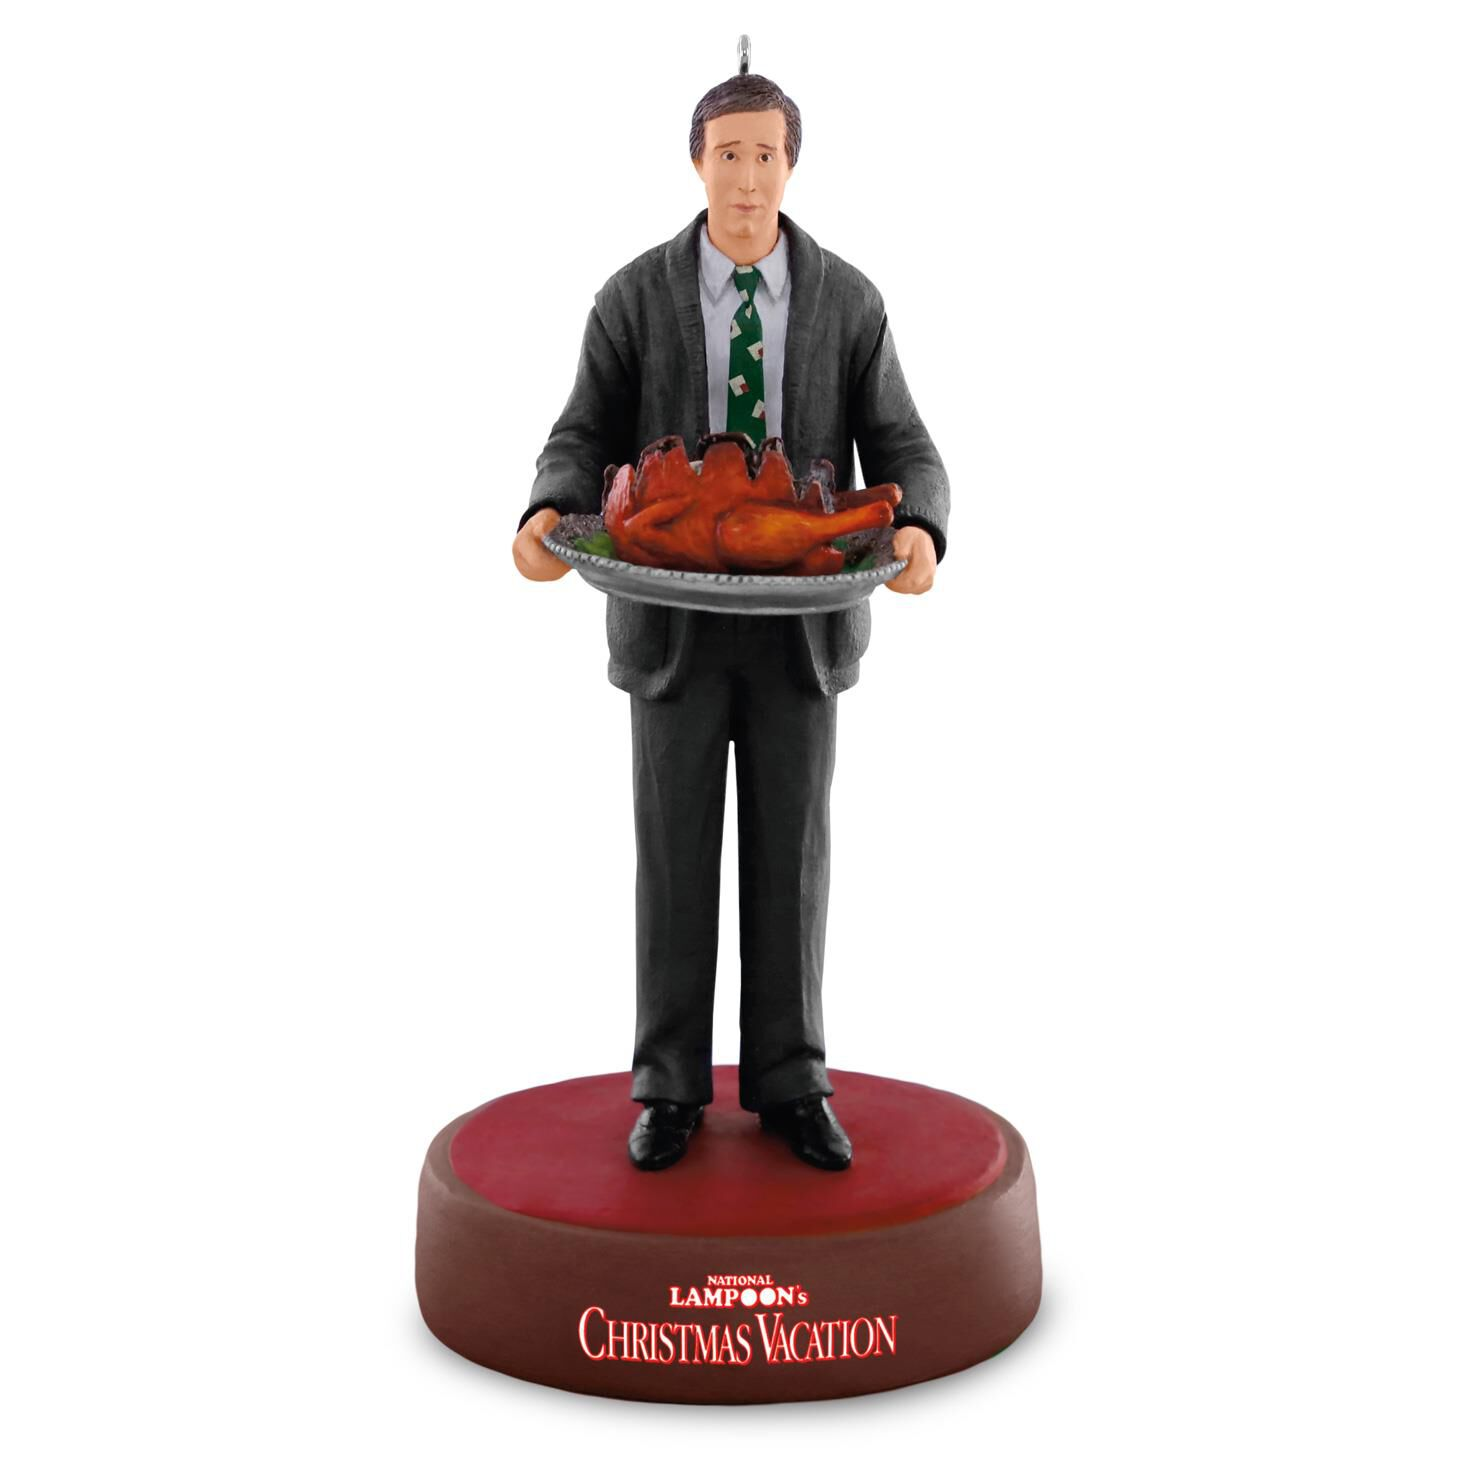 Christmas Vacation Clark Griswold Christmas Ornament | Hallmark